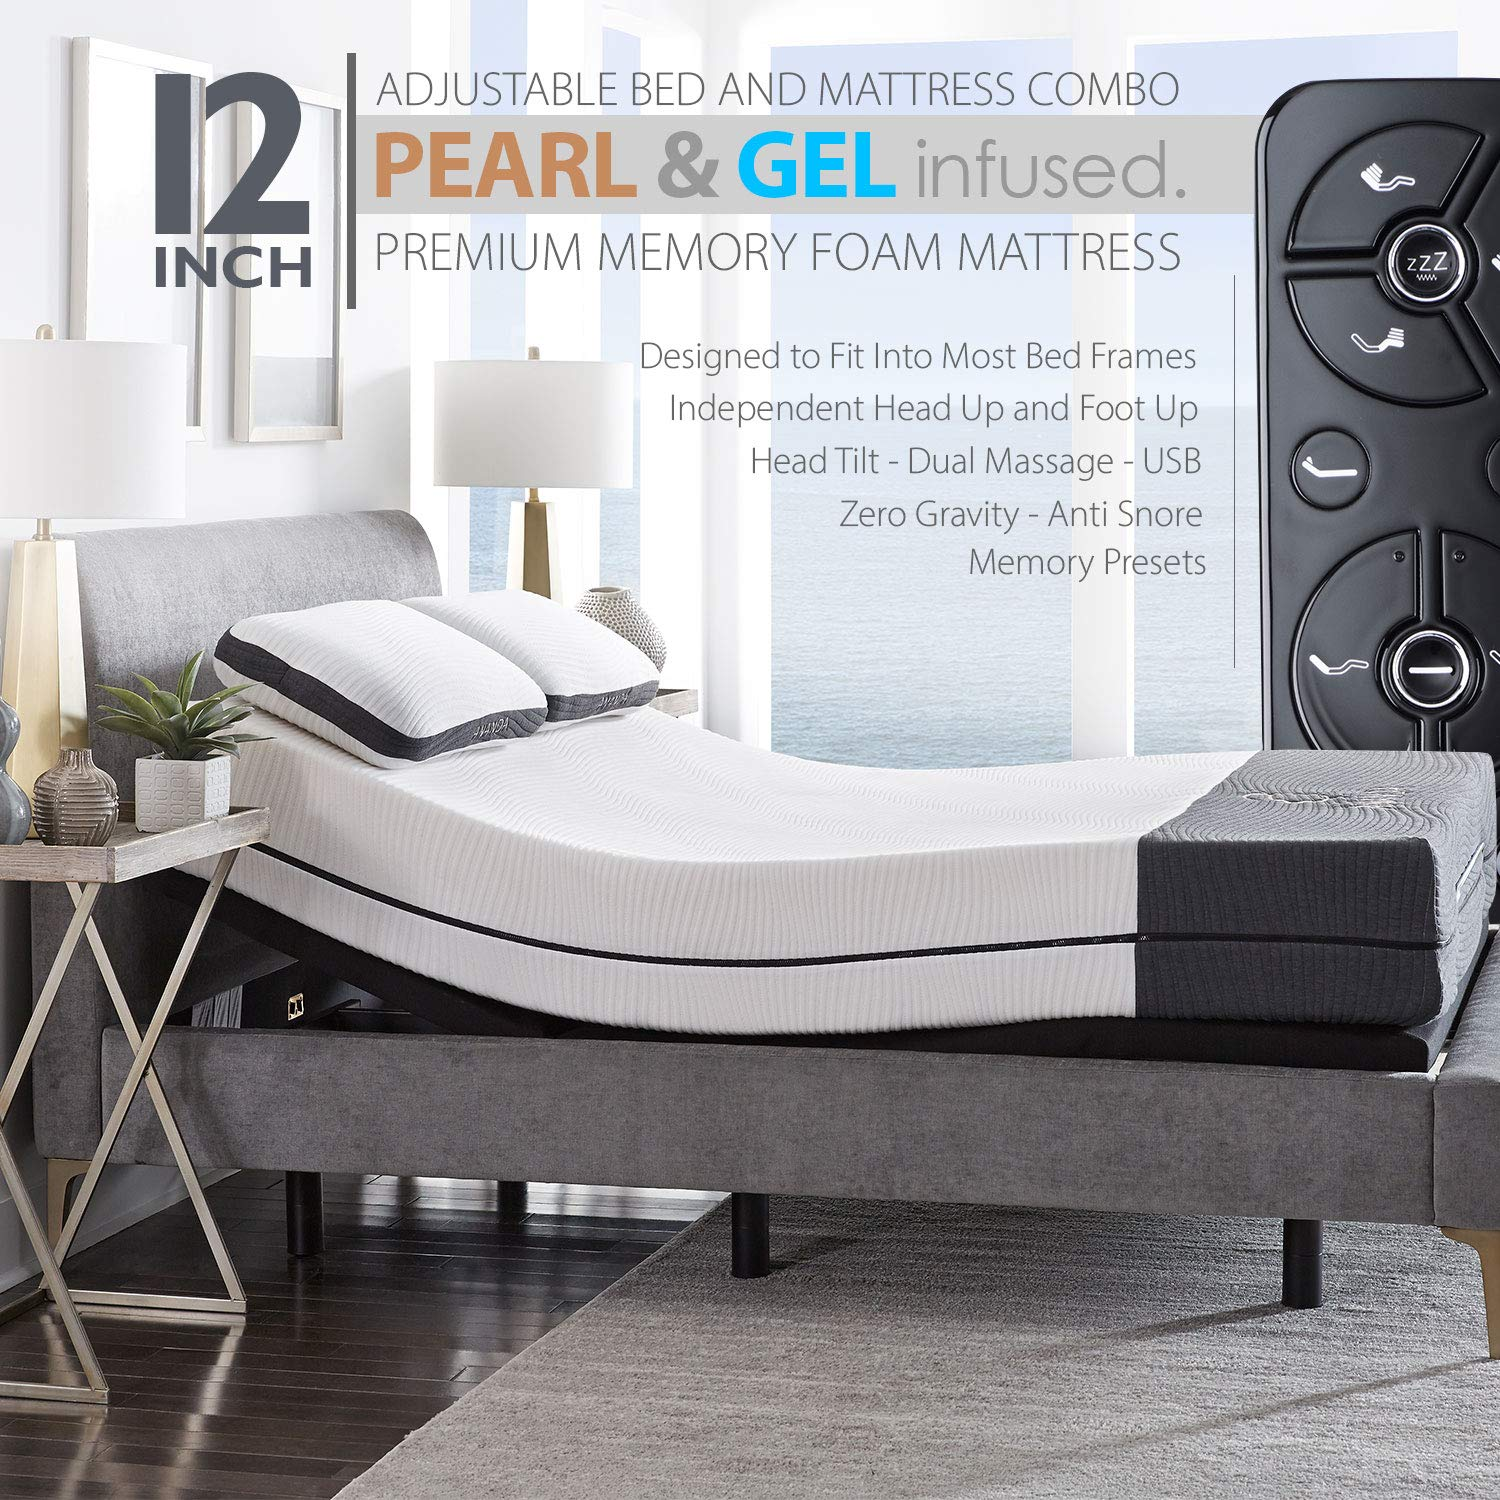 Ananda 12 Pearl and Cool Gel Infused Memory Foam Mattress with Premium Adjustable Bed Frame Combo, Head Tilt, Massage, USB, Zero Gravity,Anti-Snore Queen